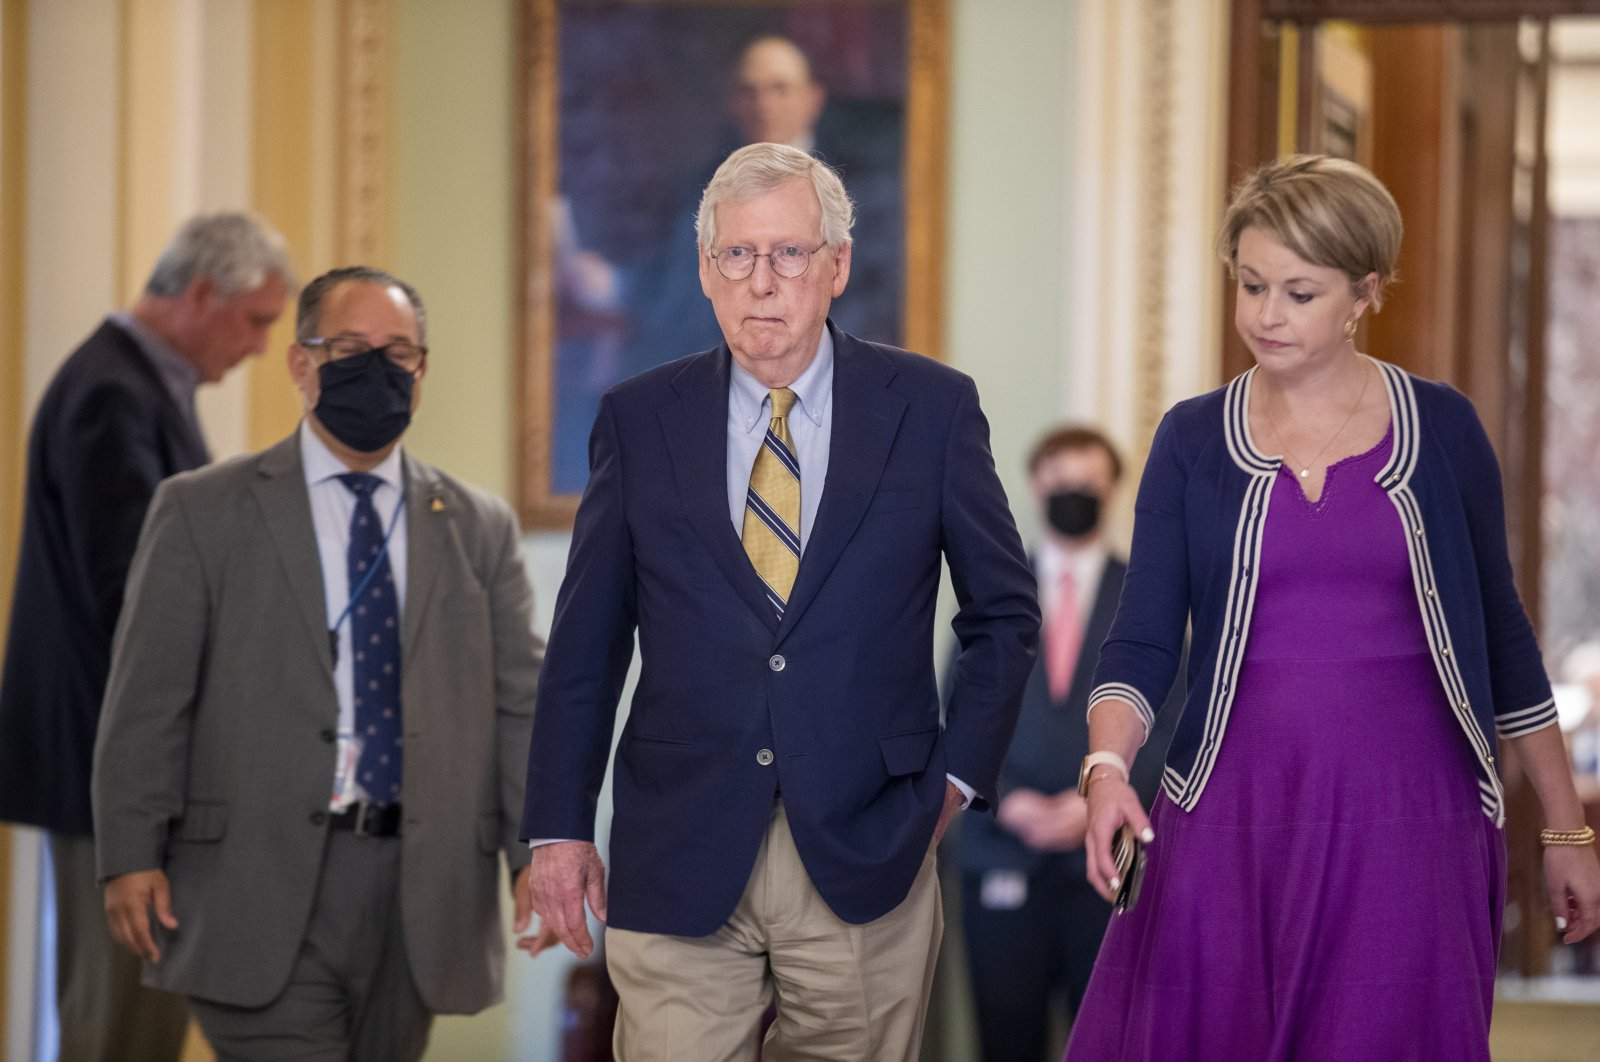 Senate Minority Leader Mitch McConnell walks to his office following a procedural vote to stall the Jan. 6 commission in the U.S. Capitol, Washington, D.C., May 28, 2021. (EPA Photo)